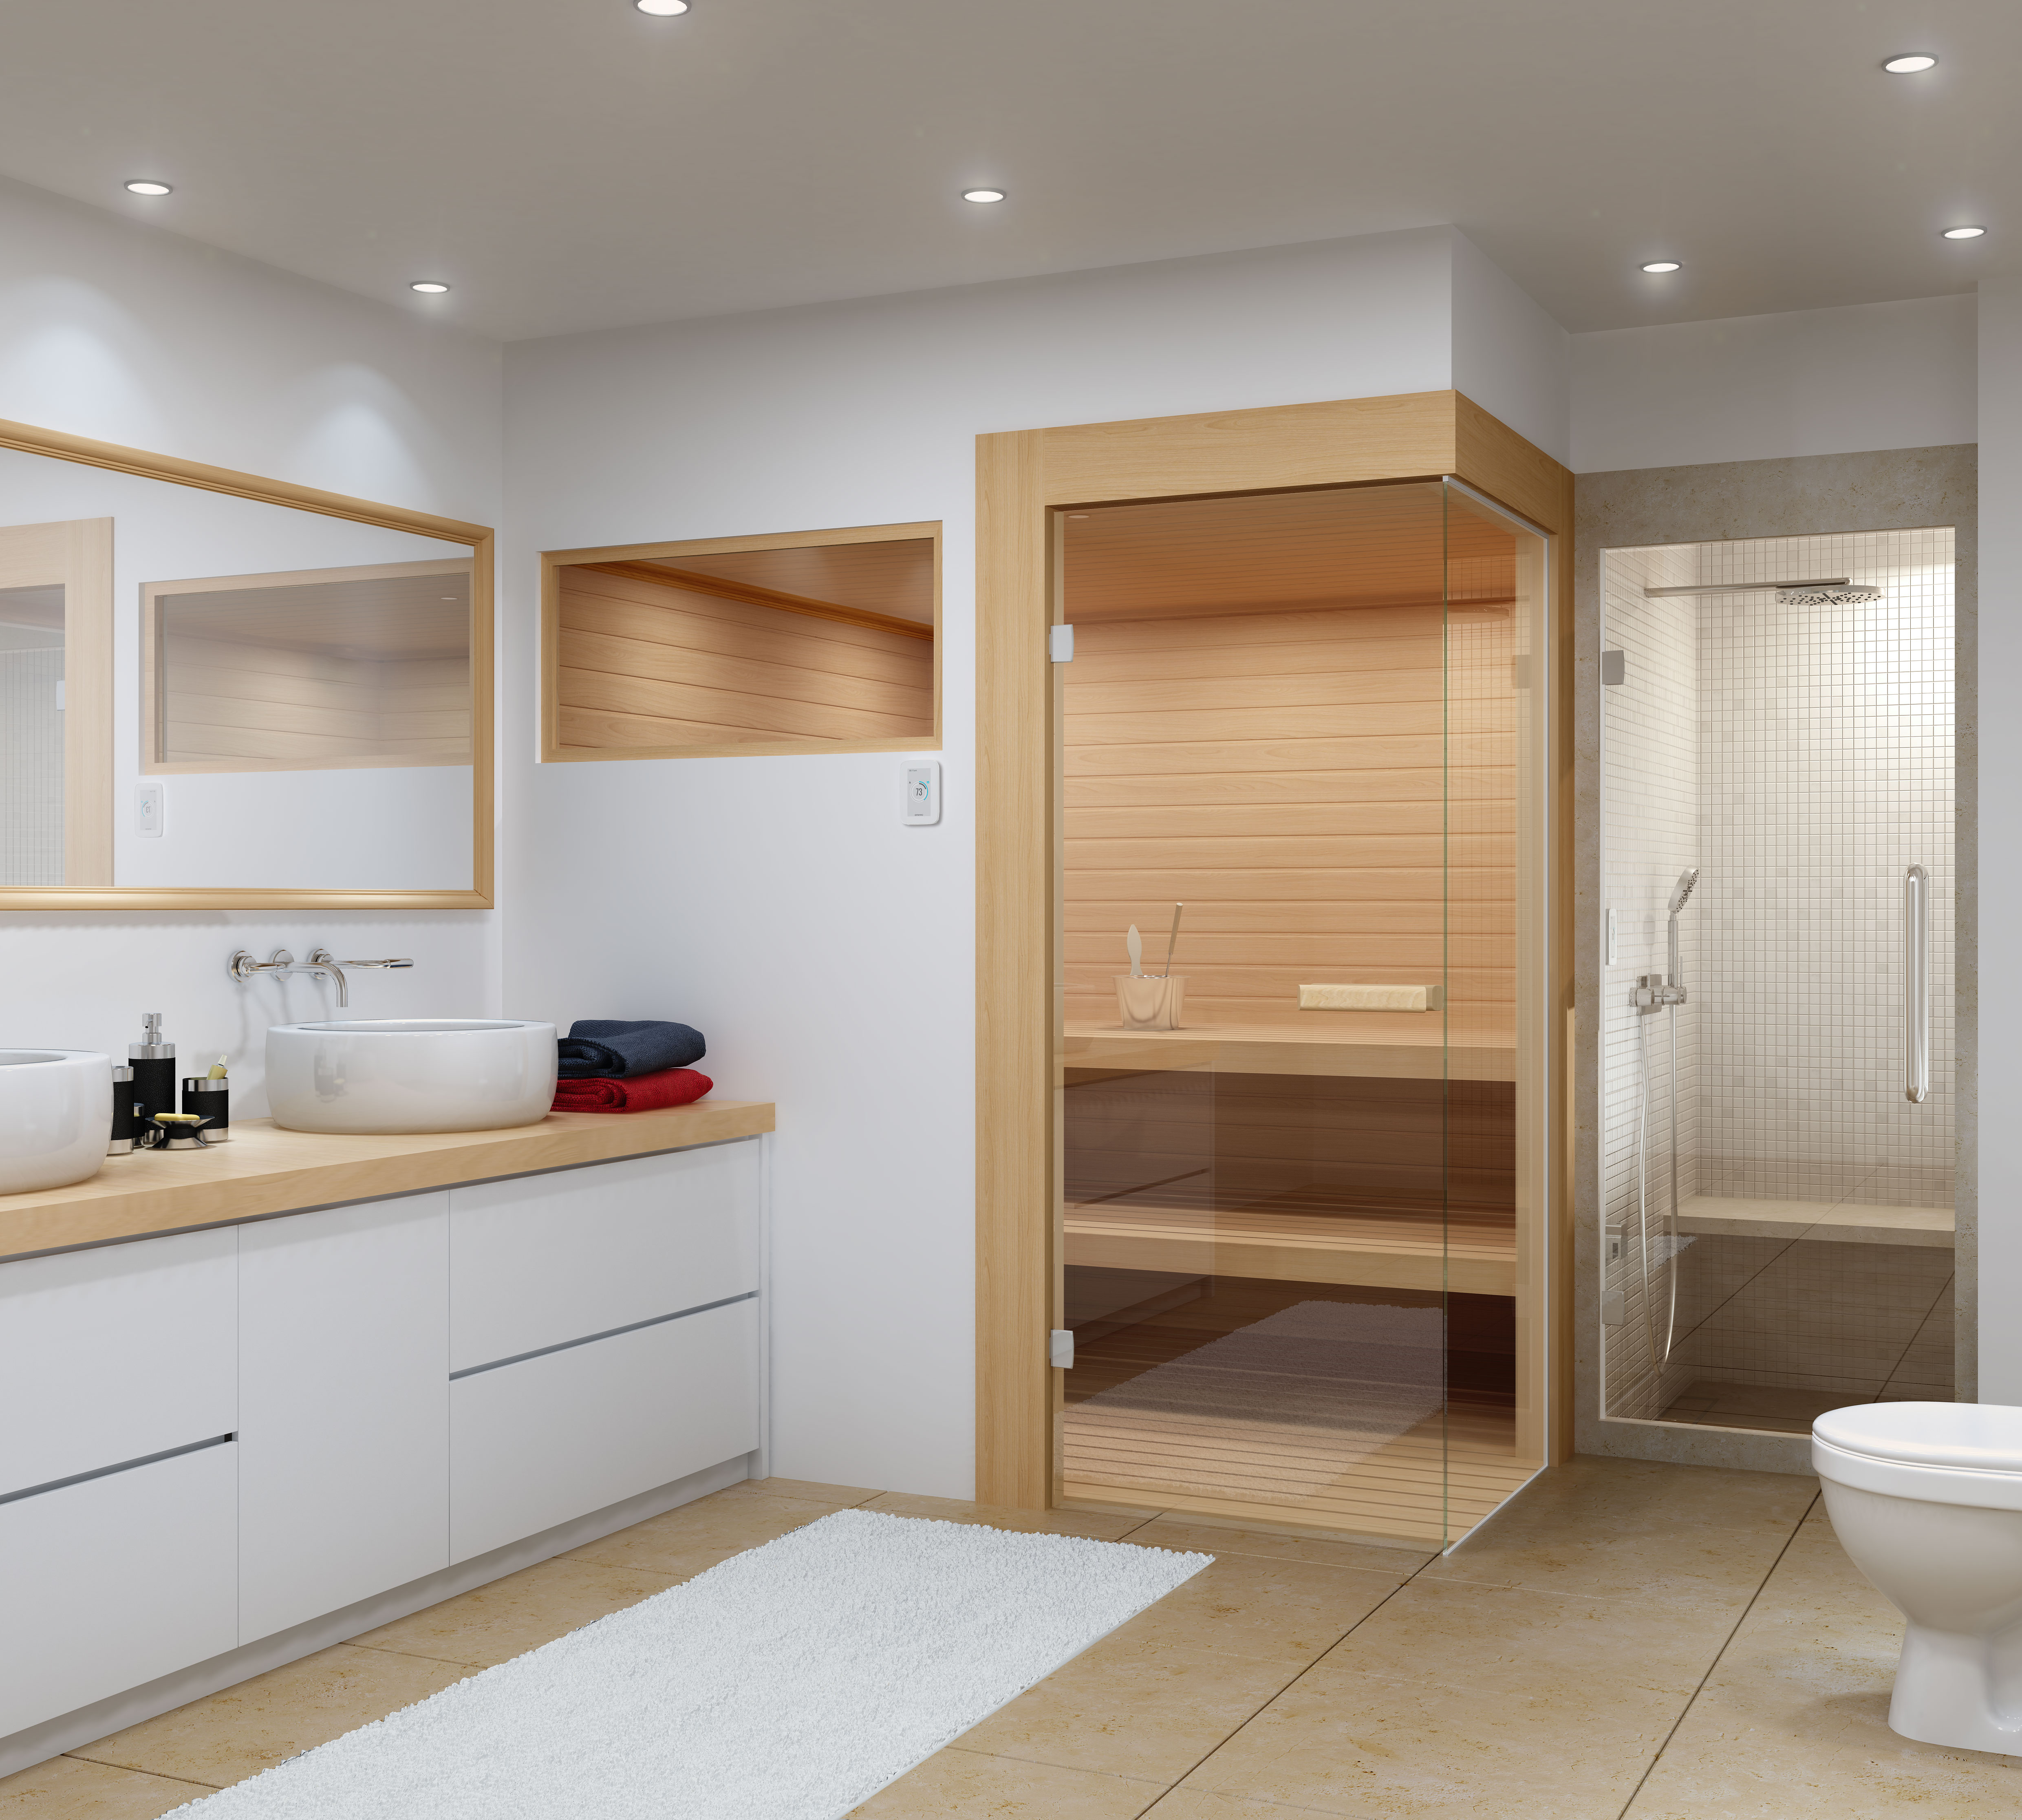 Amerec Sees Trend to Include Both Sauna and Steam in Bathroom Remodels